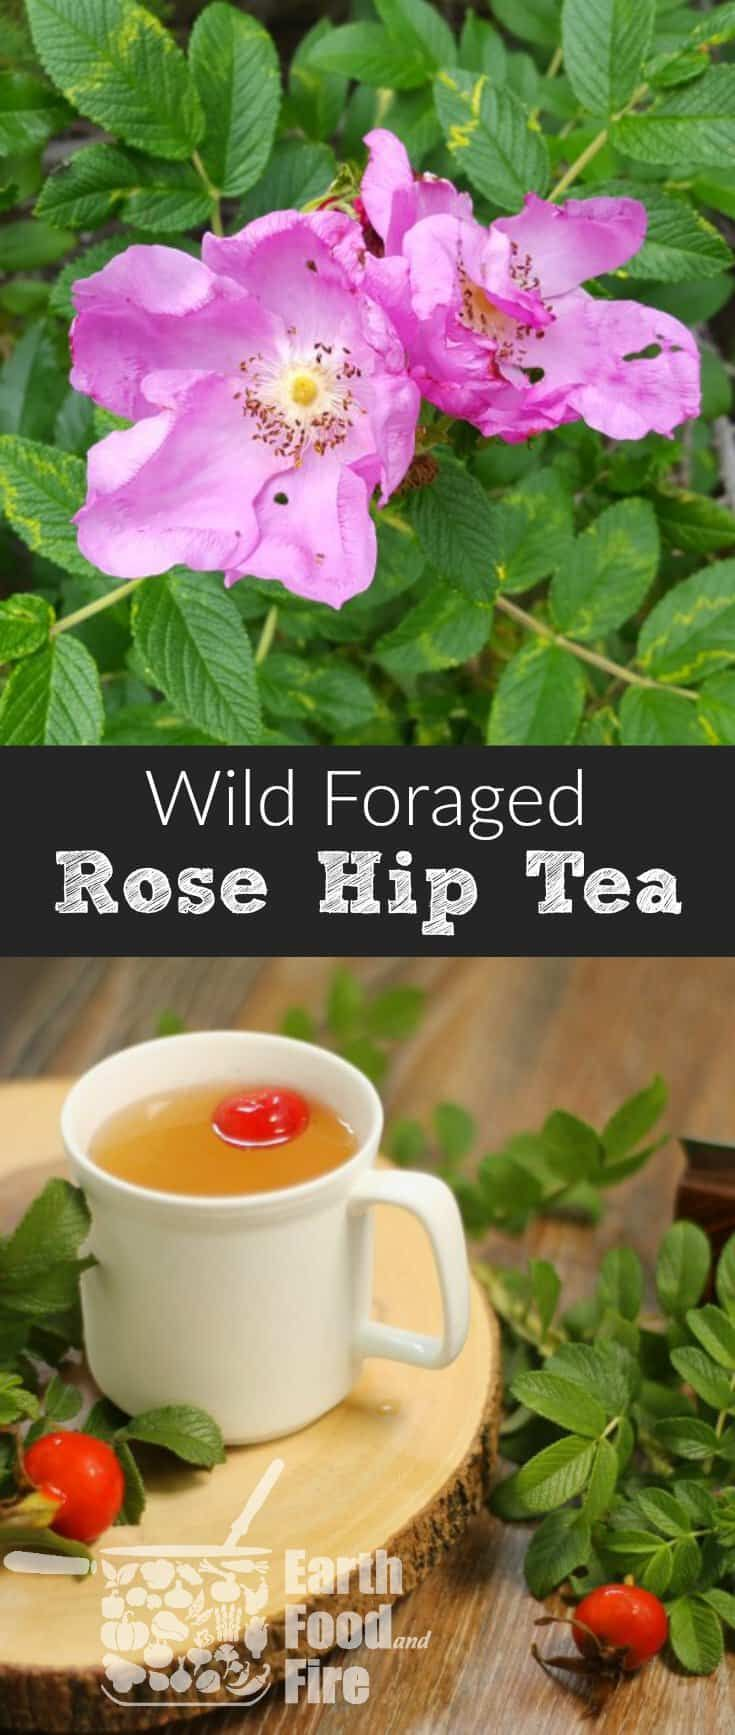 A tart and slightly fruity tea made with foraged wild rose hips this drink is excellent for use in combating colds and flus due to its high Vitamin C content